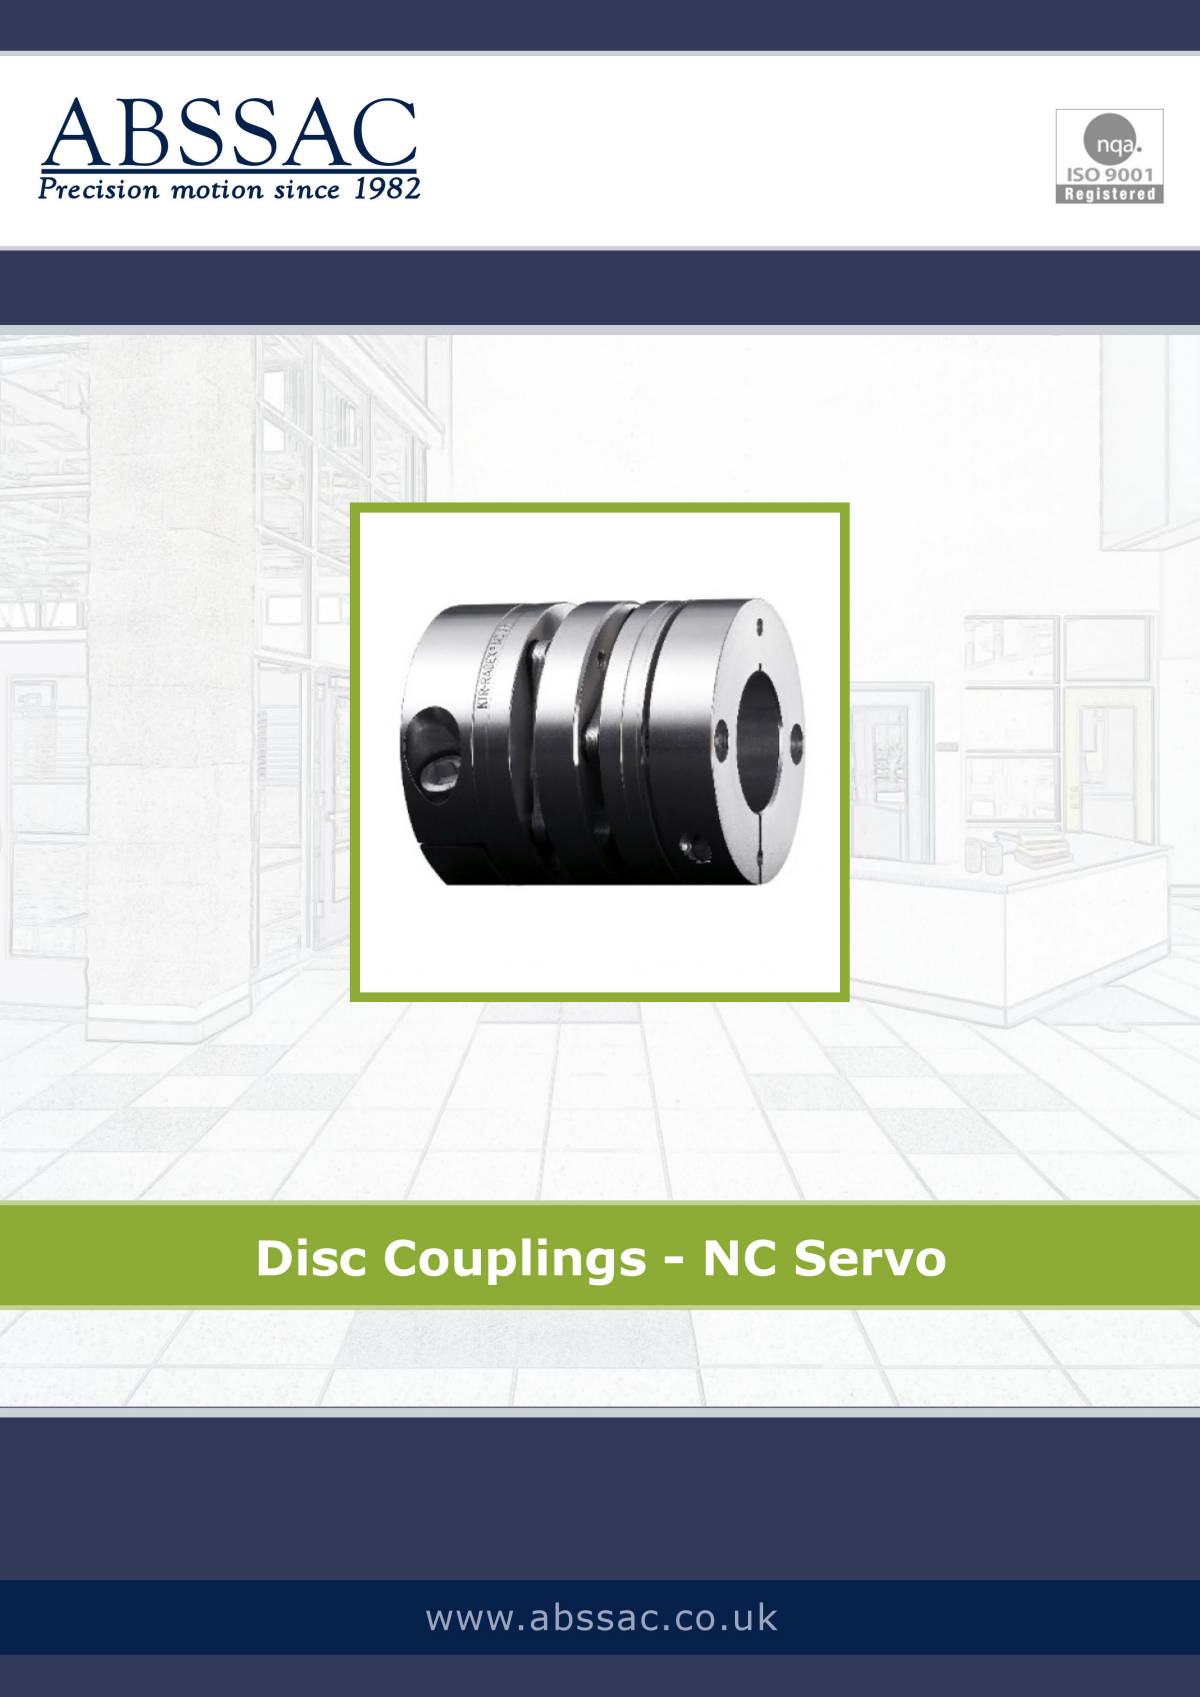 Abssac NC Servo Disc Shaft Coupling Page 11